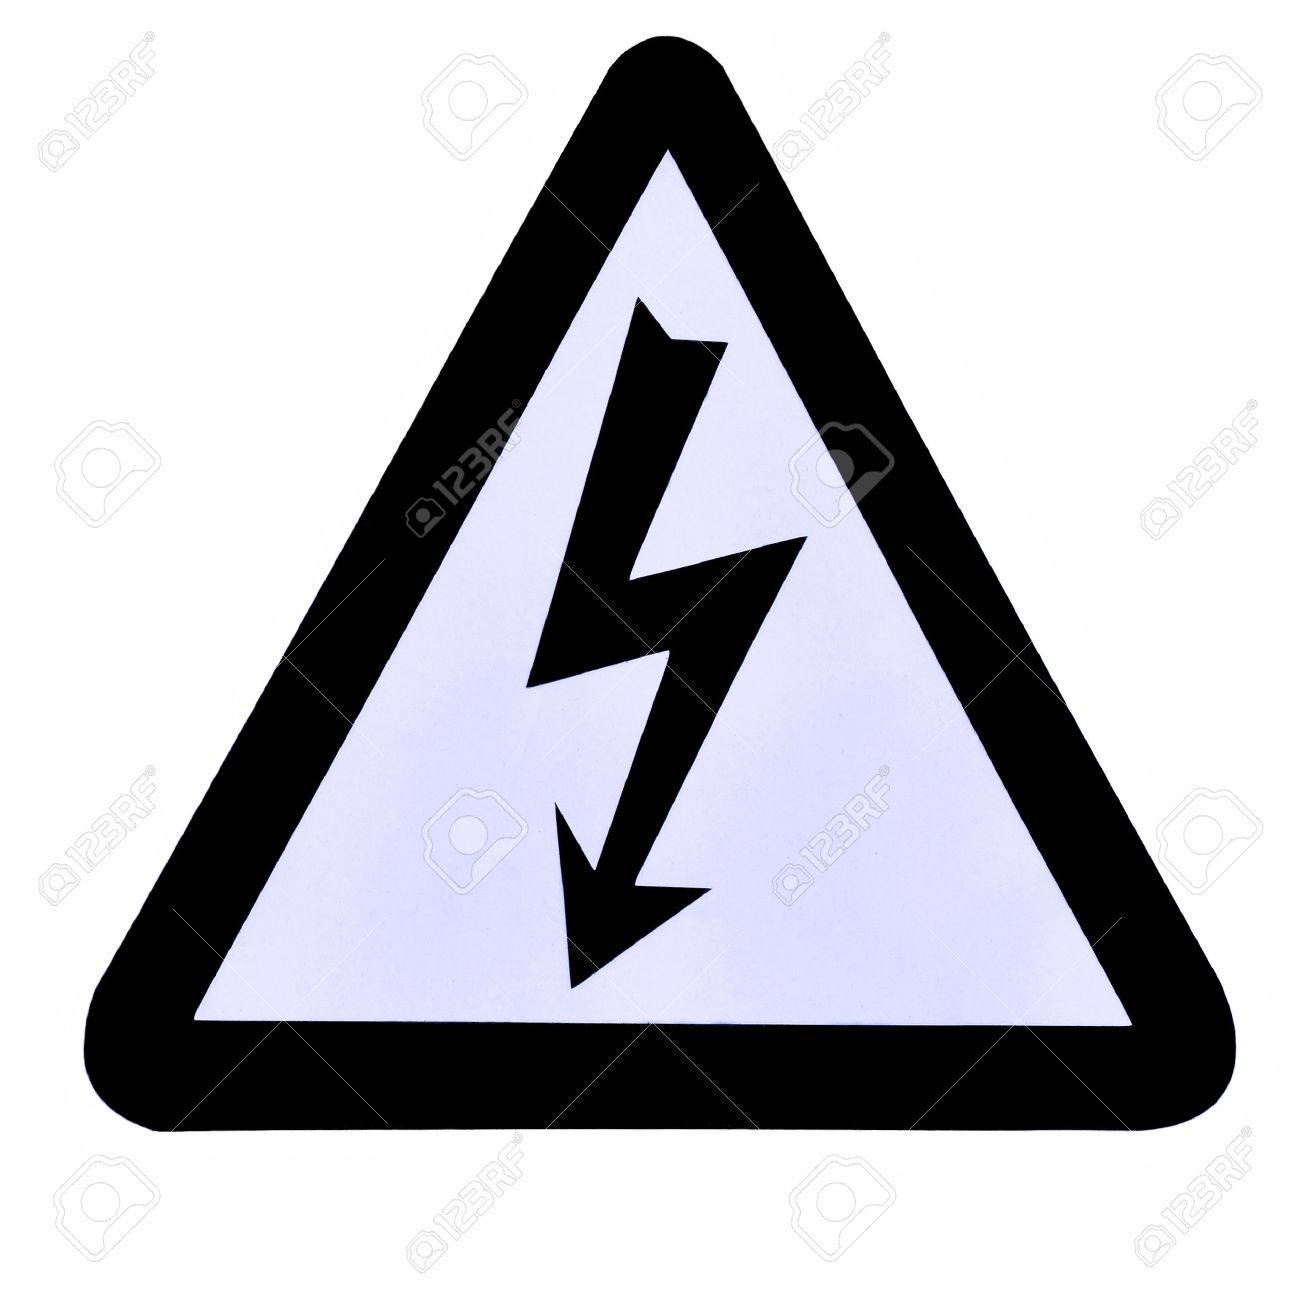 High Voltage Sign Symbol Stock Photo Picture And Royalty Free